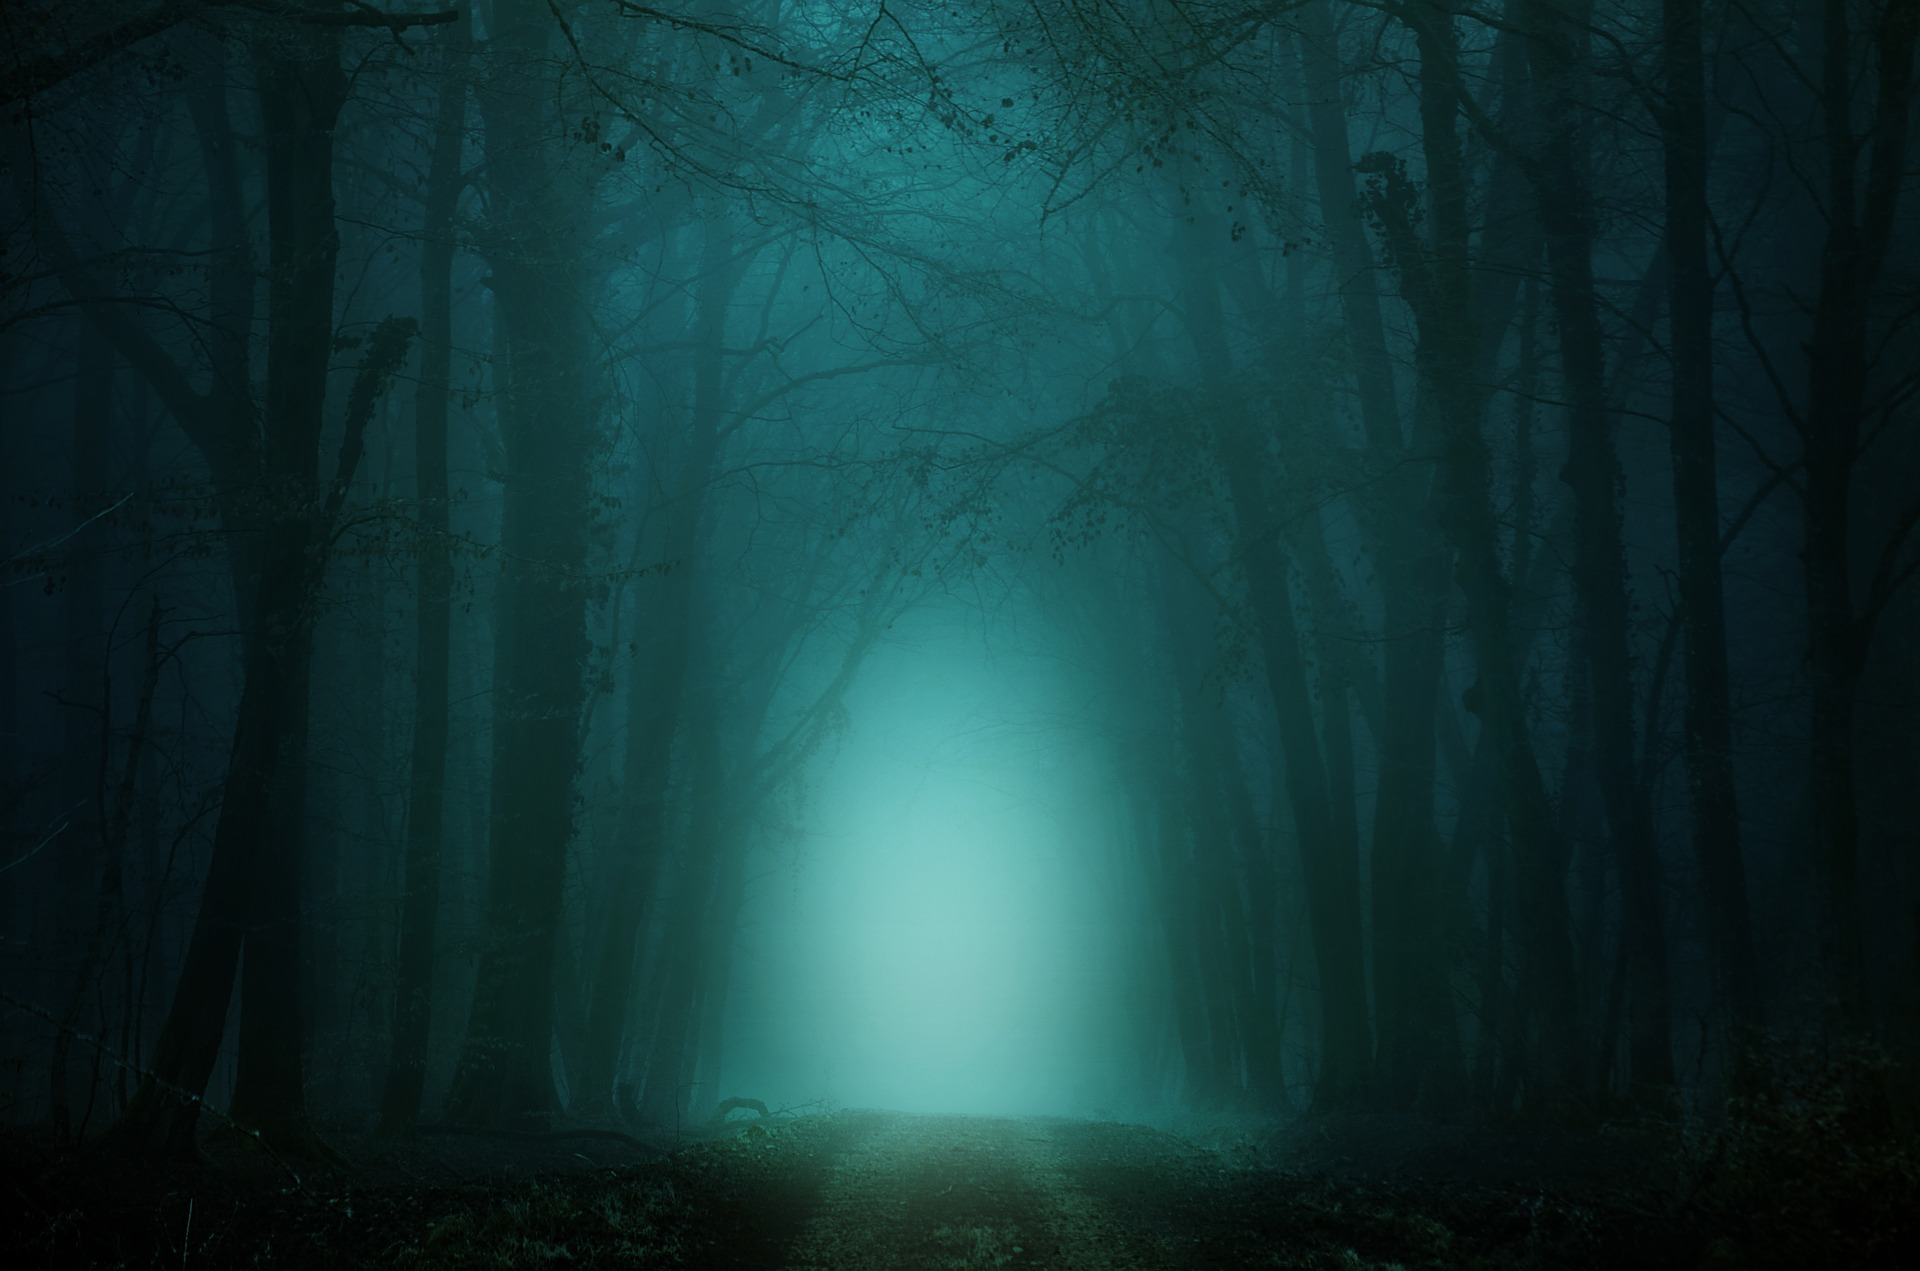 forest-4099730_1920